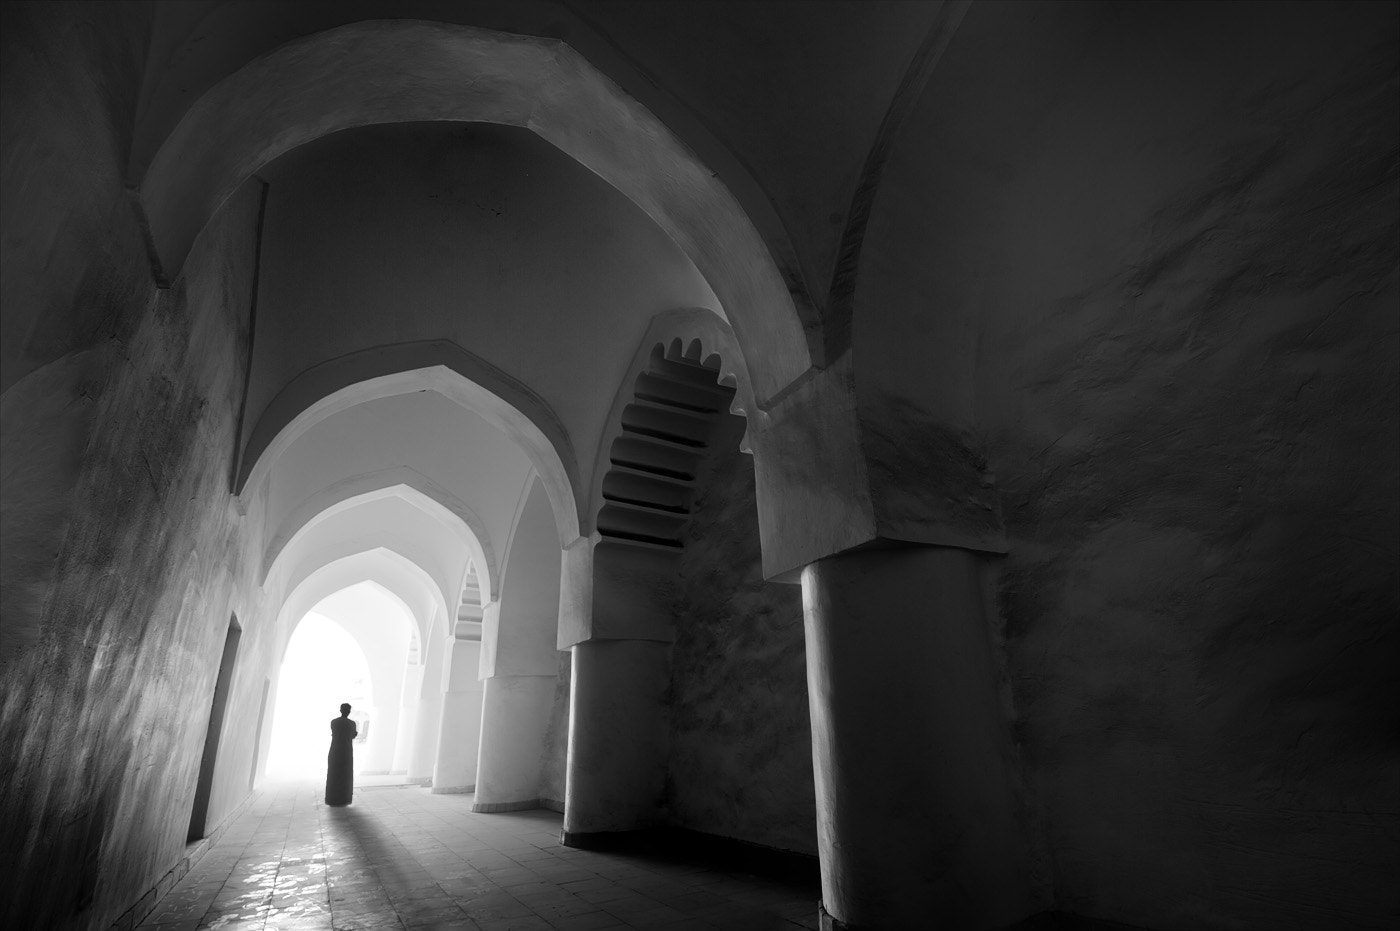 Photograph inside a fortress by Zuhair Ahmad on 500px